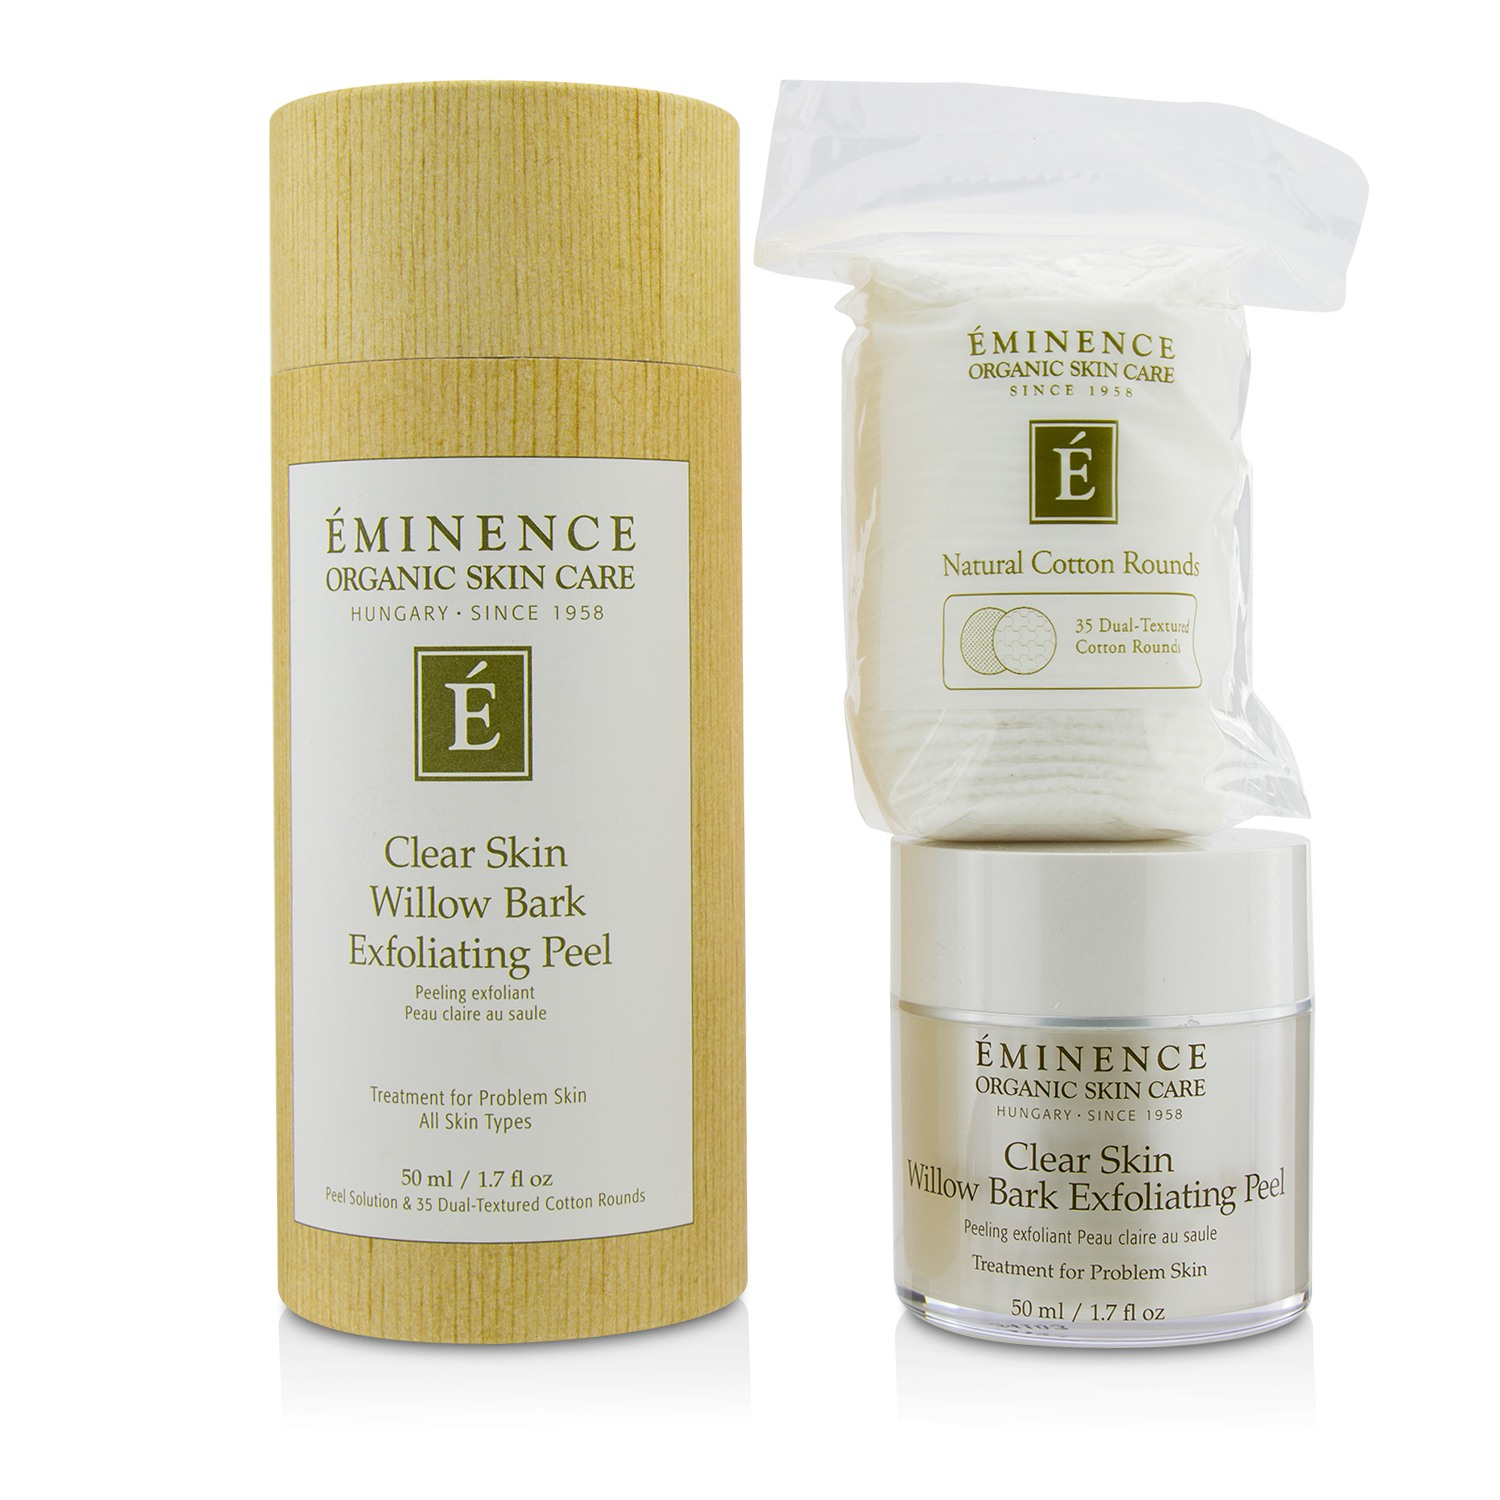 Clear Skin Willow Bark Exfoliating Peel (with 35 Dual-Textured Cotton Rounds)